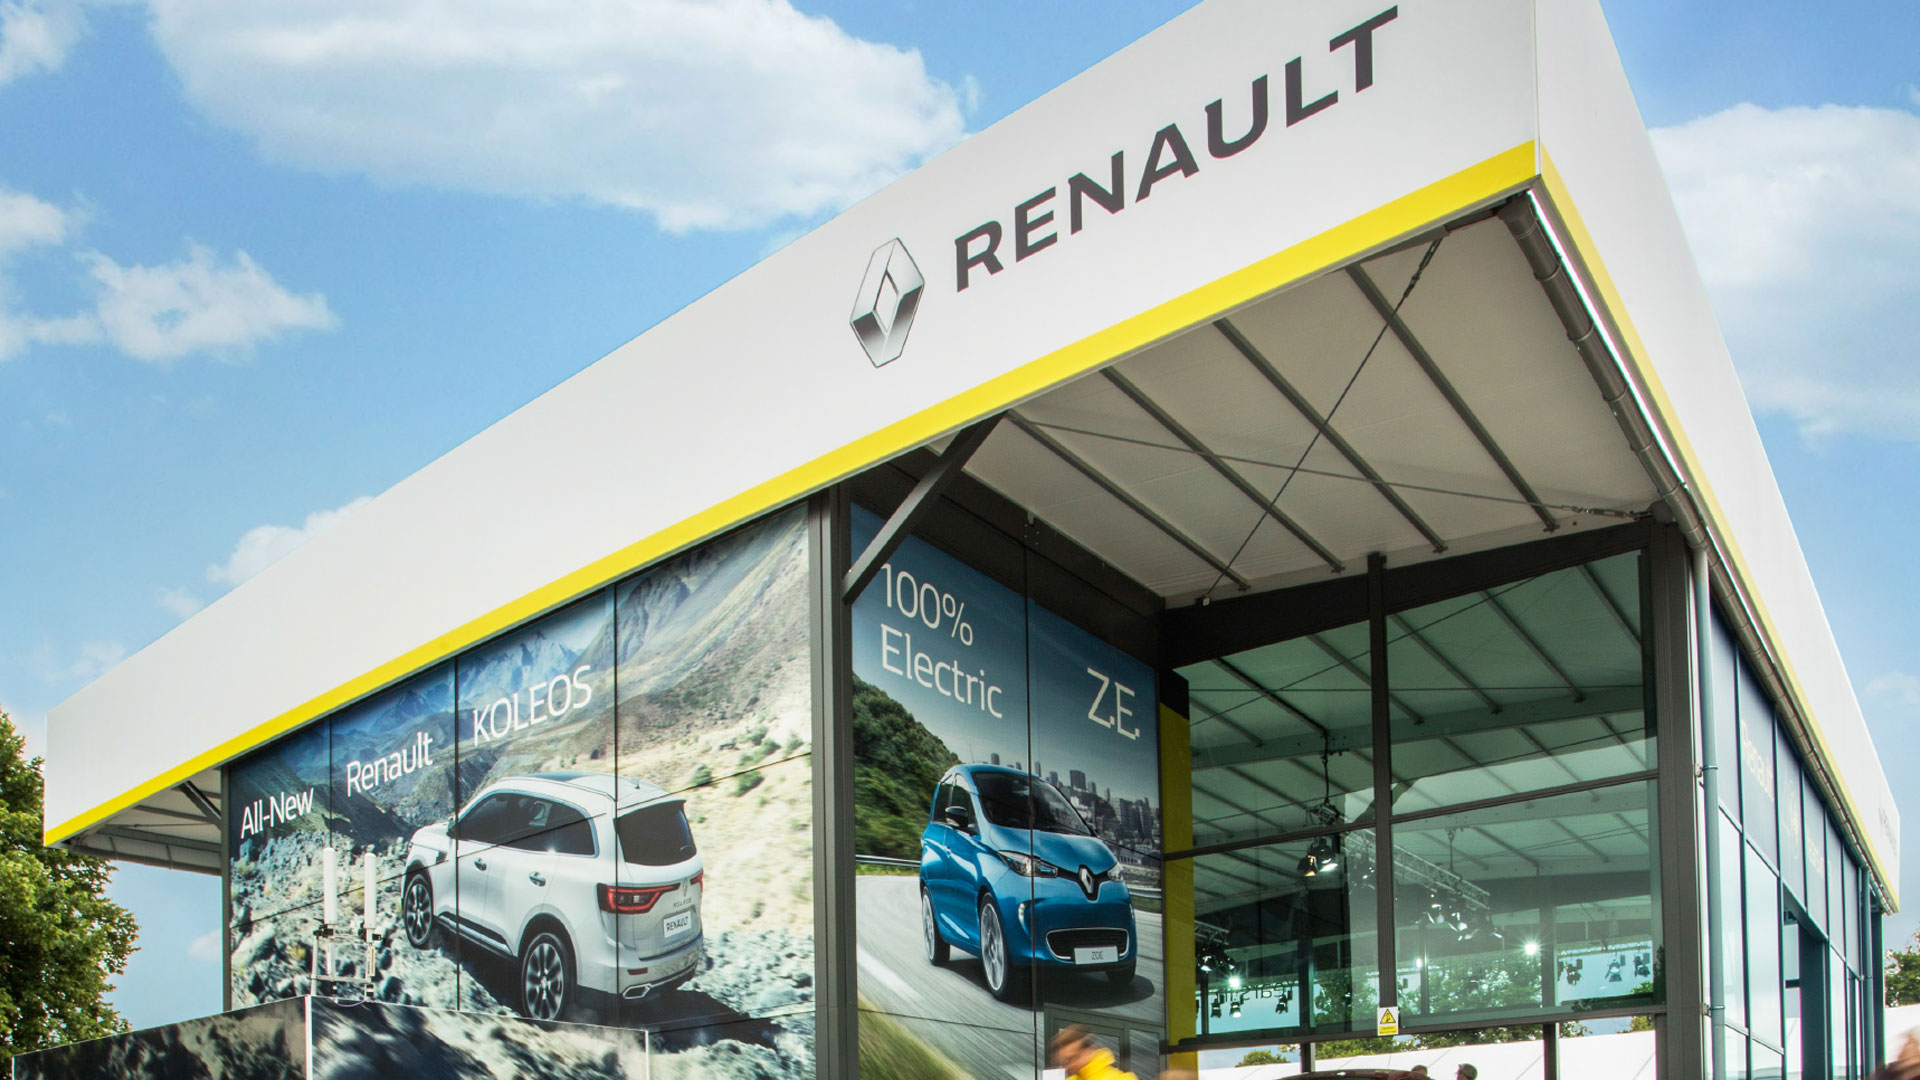 CHORD_web-images_RENAULT2_1920x1080px.jpg